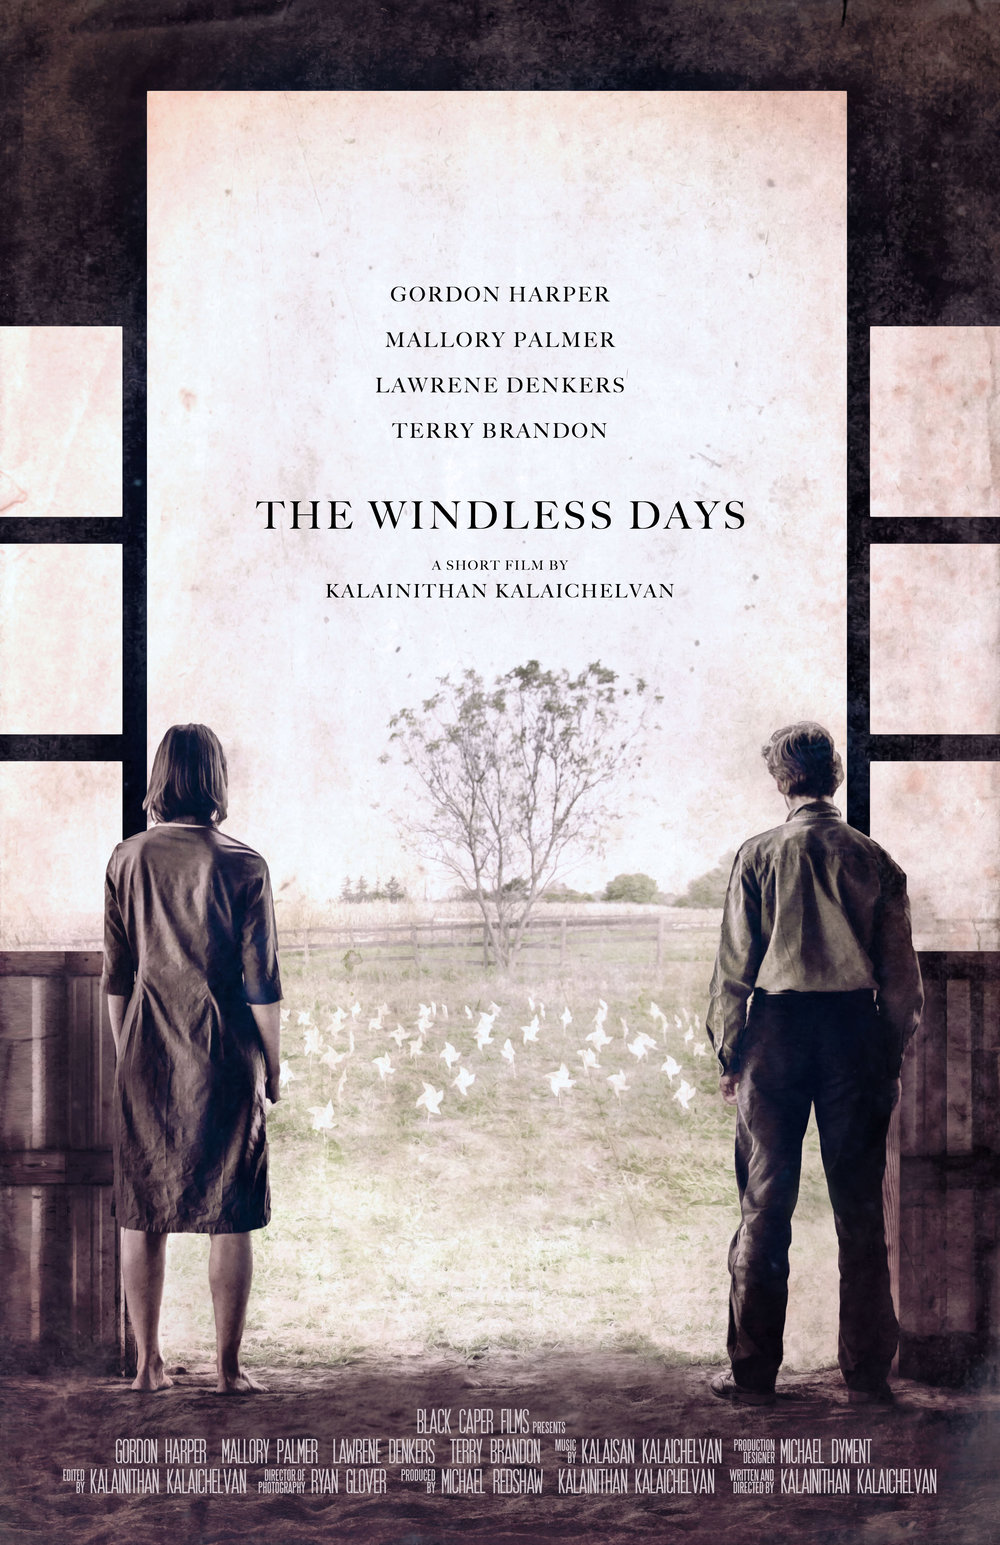 The Windless Days P O S T E R.jpg